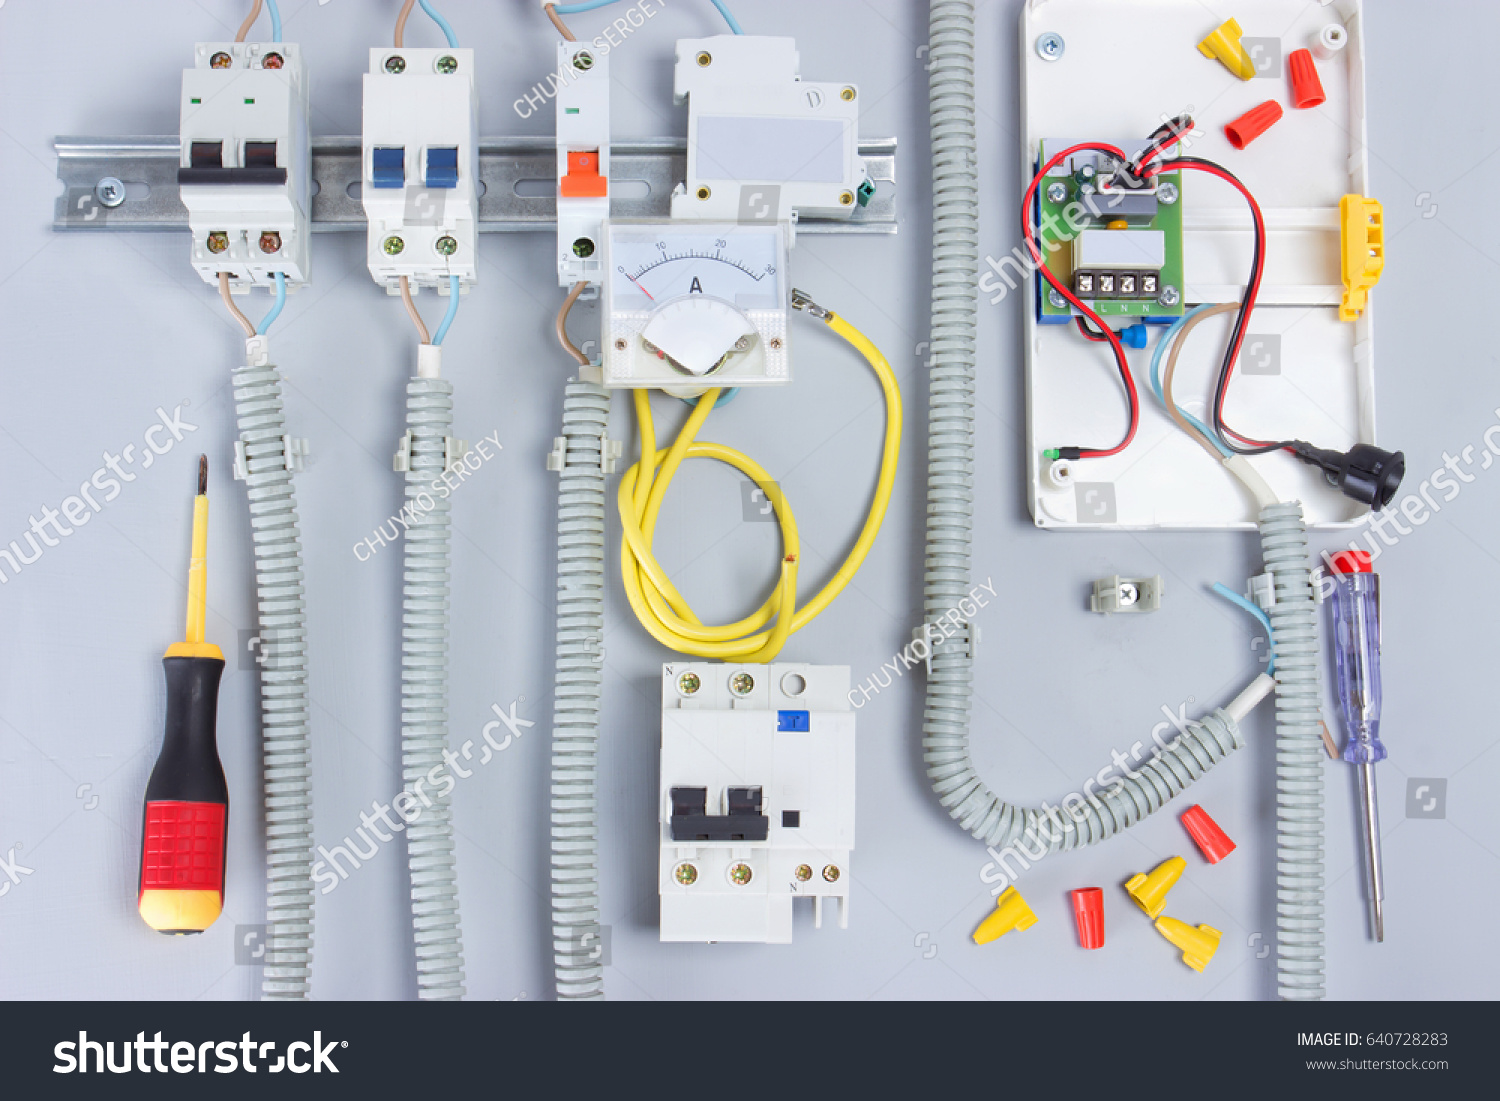 Electric Equipmentbox Electrical Devices Wirestools Stock Photo ...